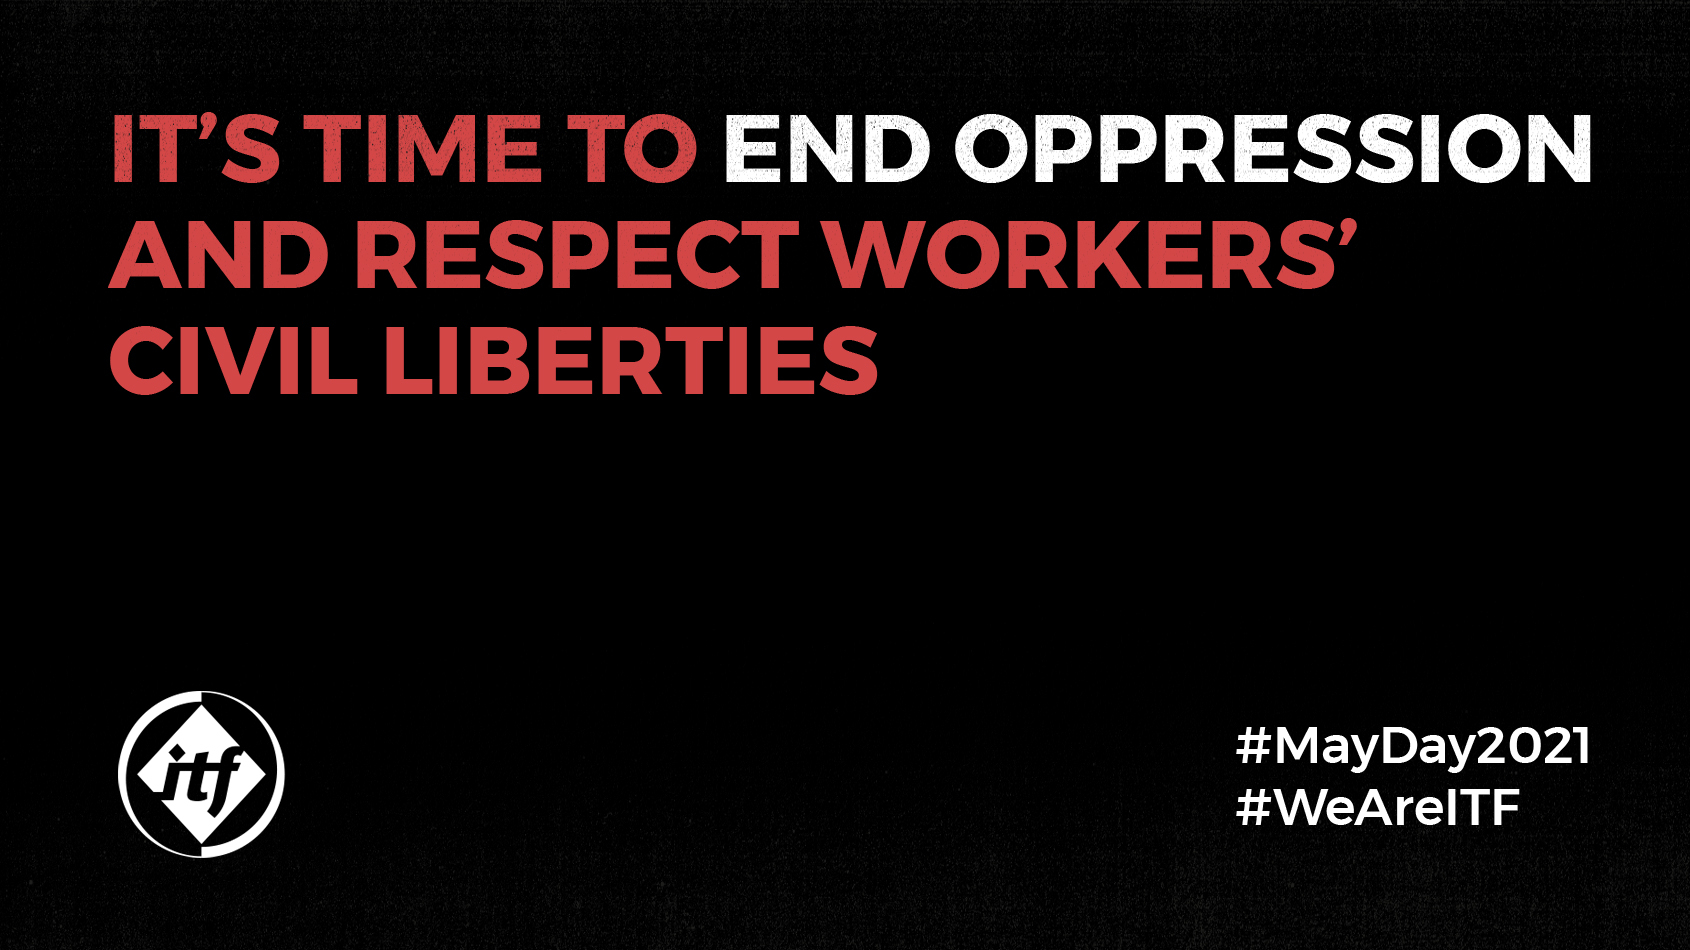 It's time to end oppression and respect workers' civil liberties